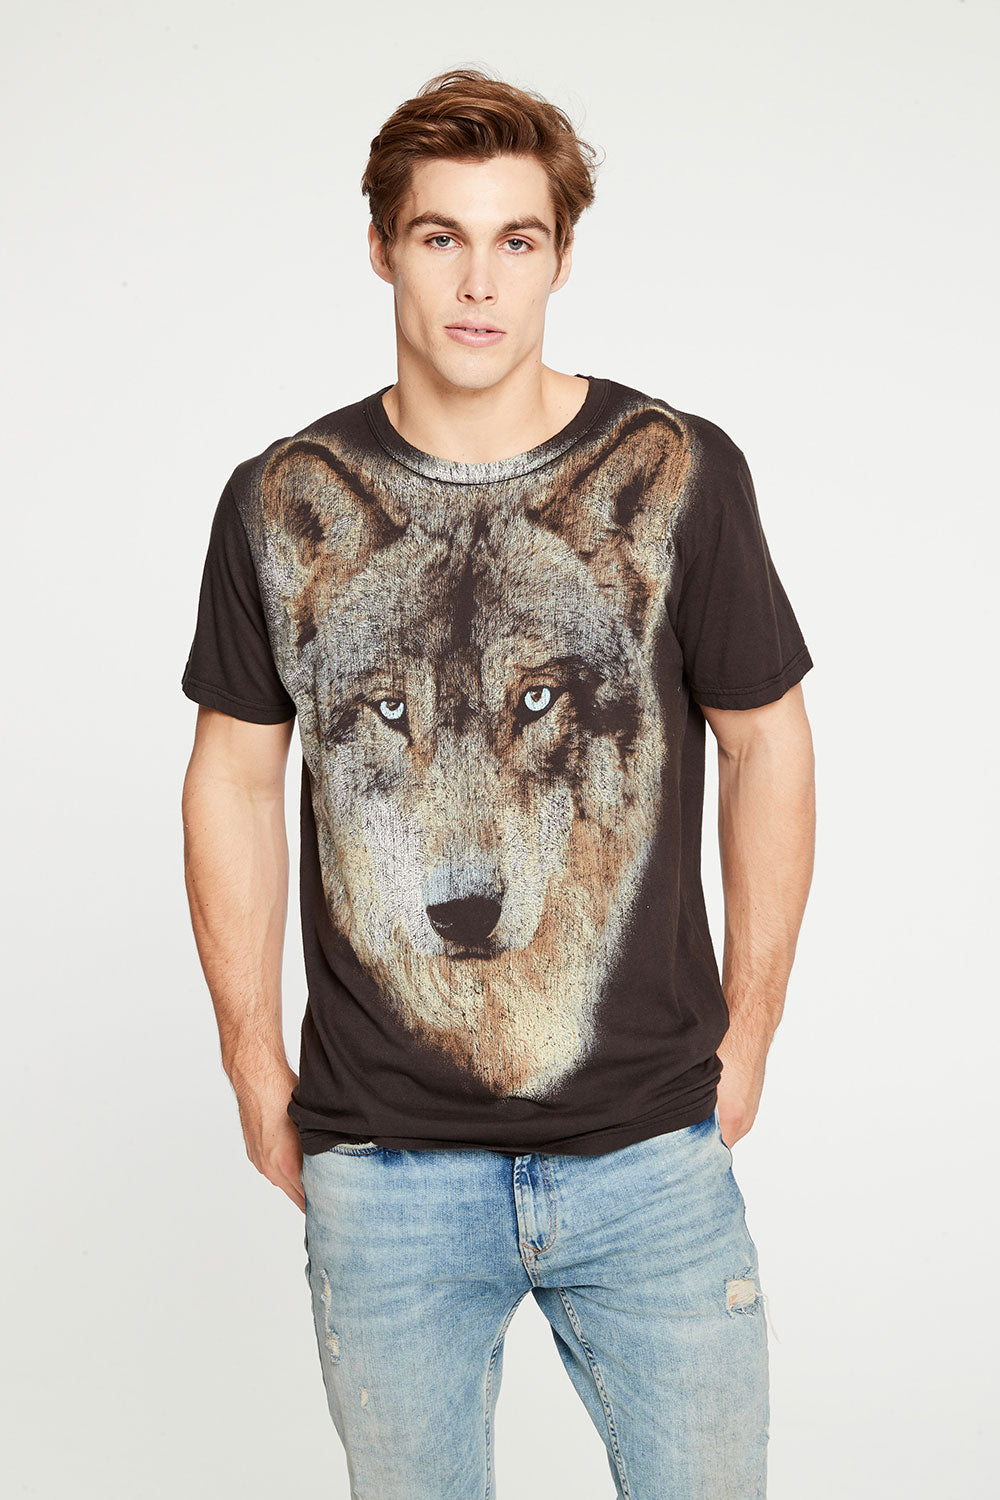 Lone Wolf MENS chaserbrand4.myshopify.com